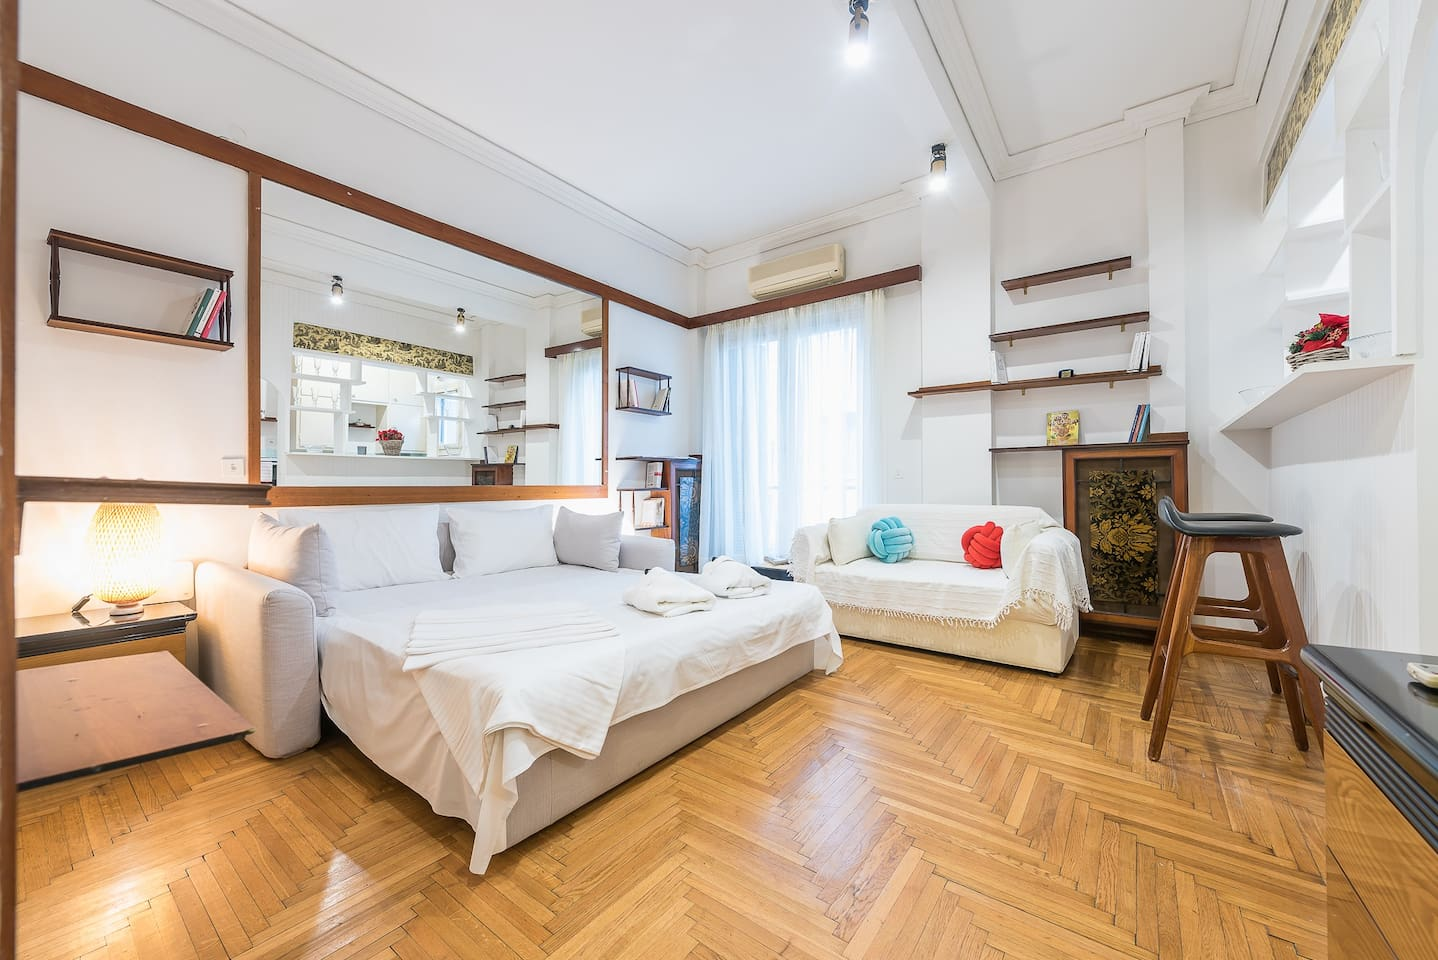 36m Homm Vintage Studio Next To Hilton Apartments For Rent In Athina